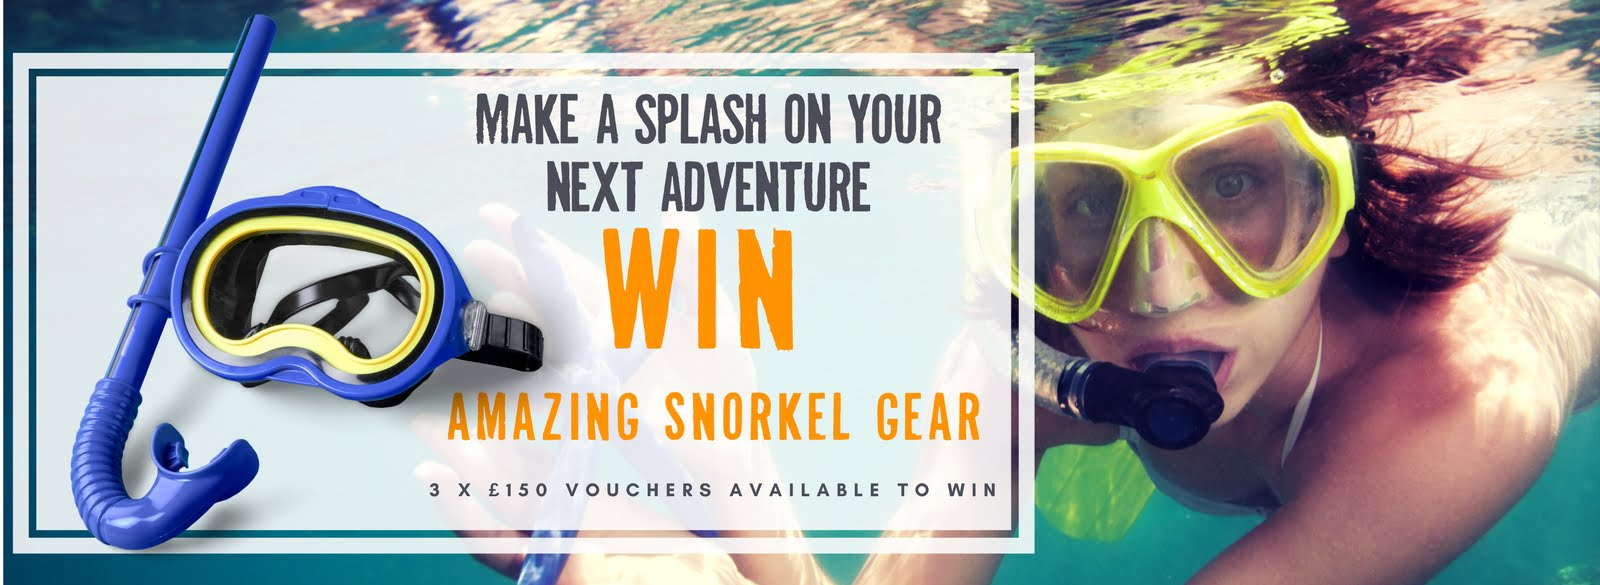 WIN – Another World Adventures competition